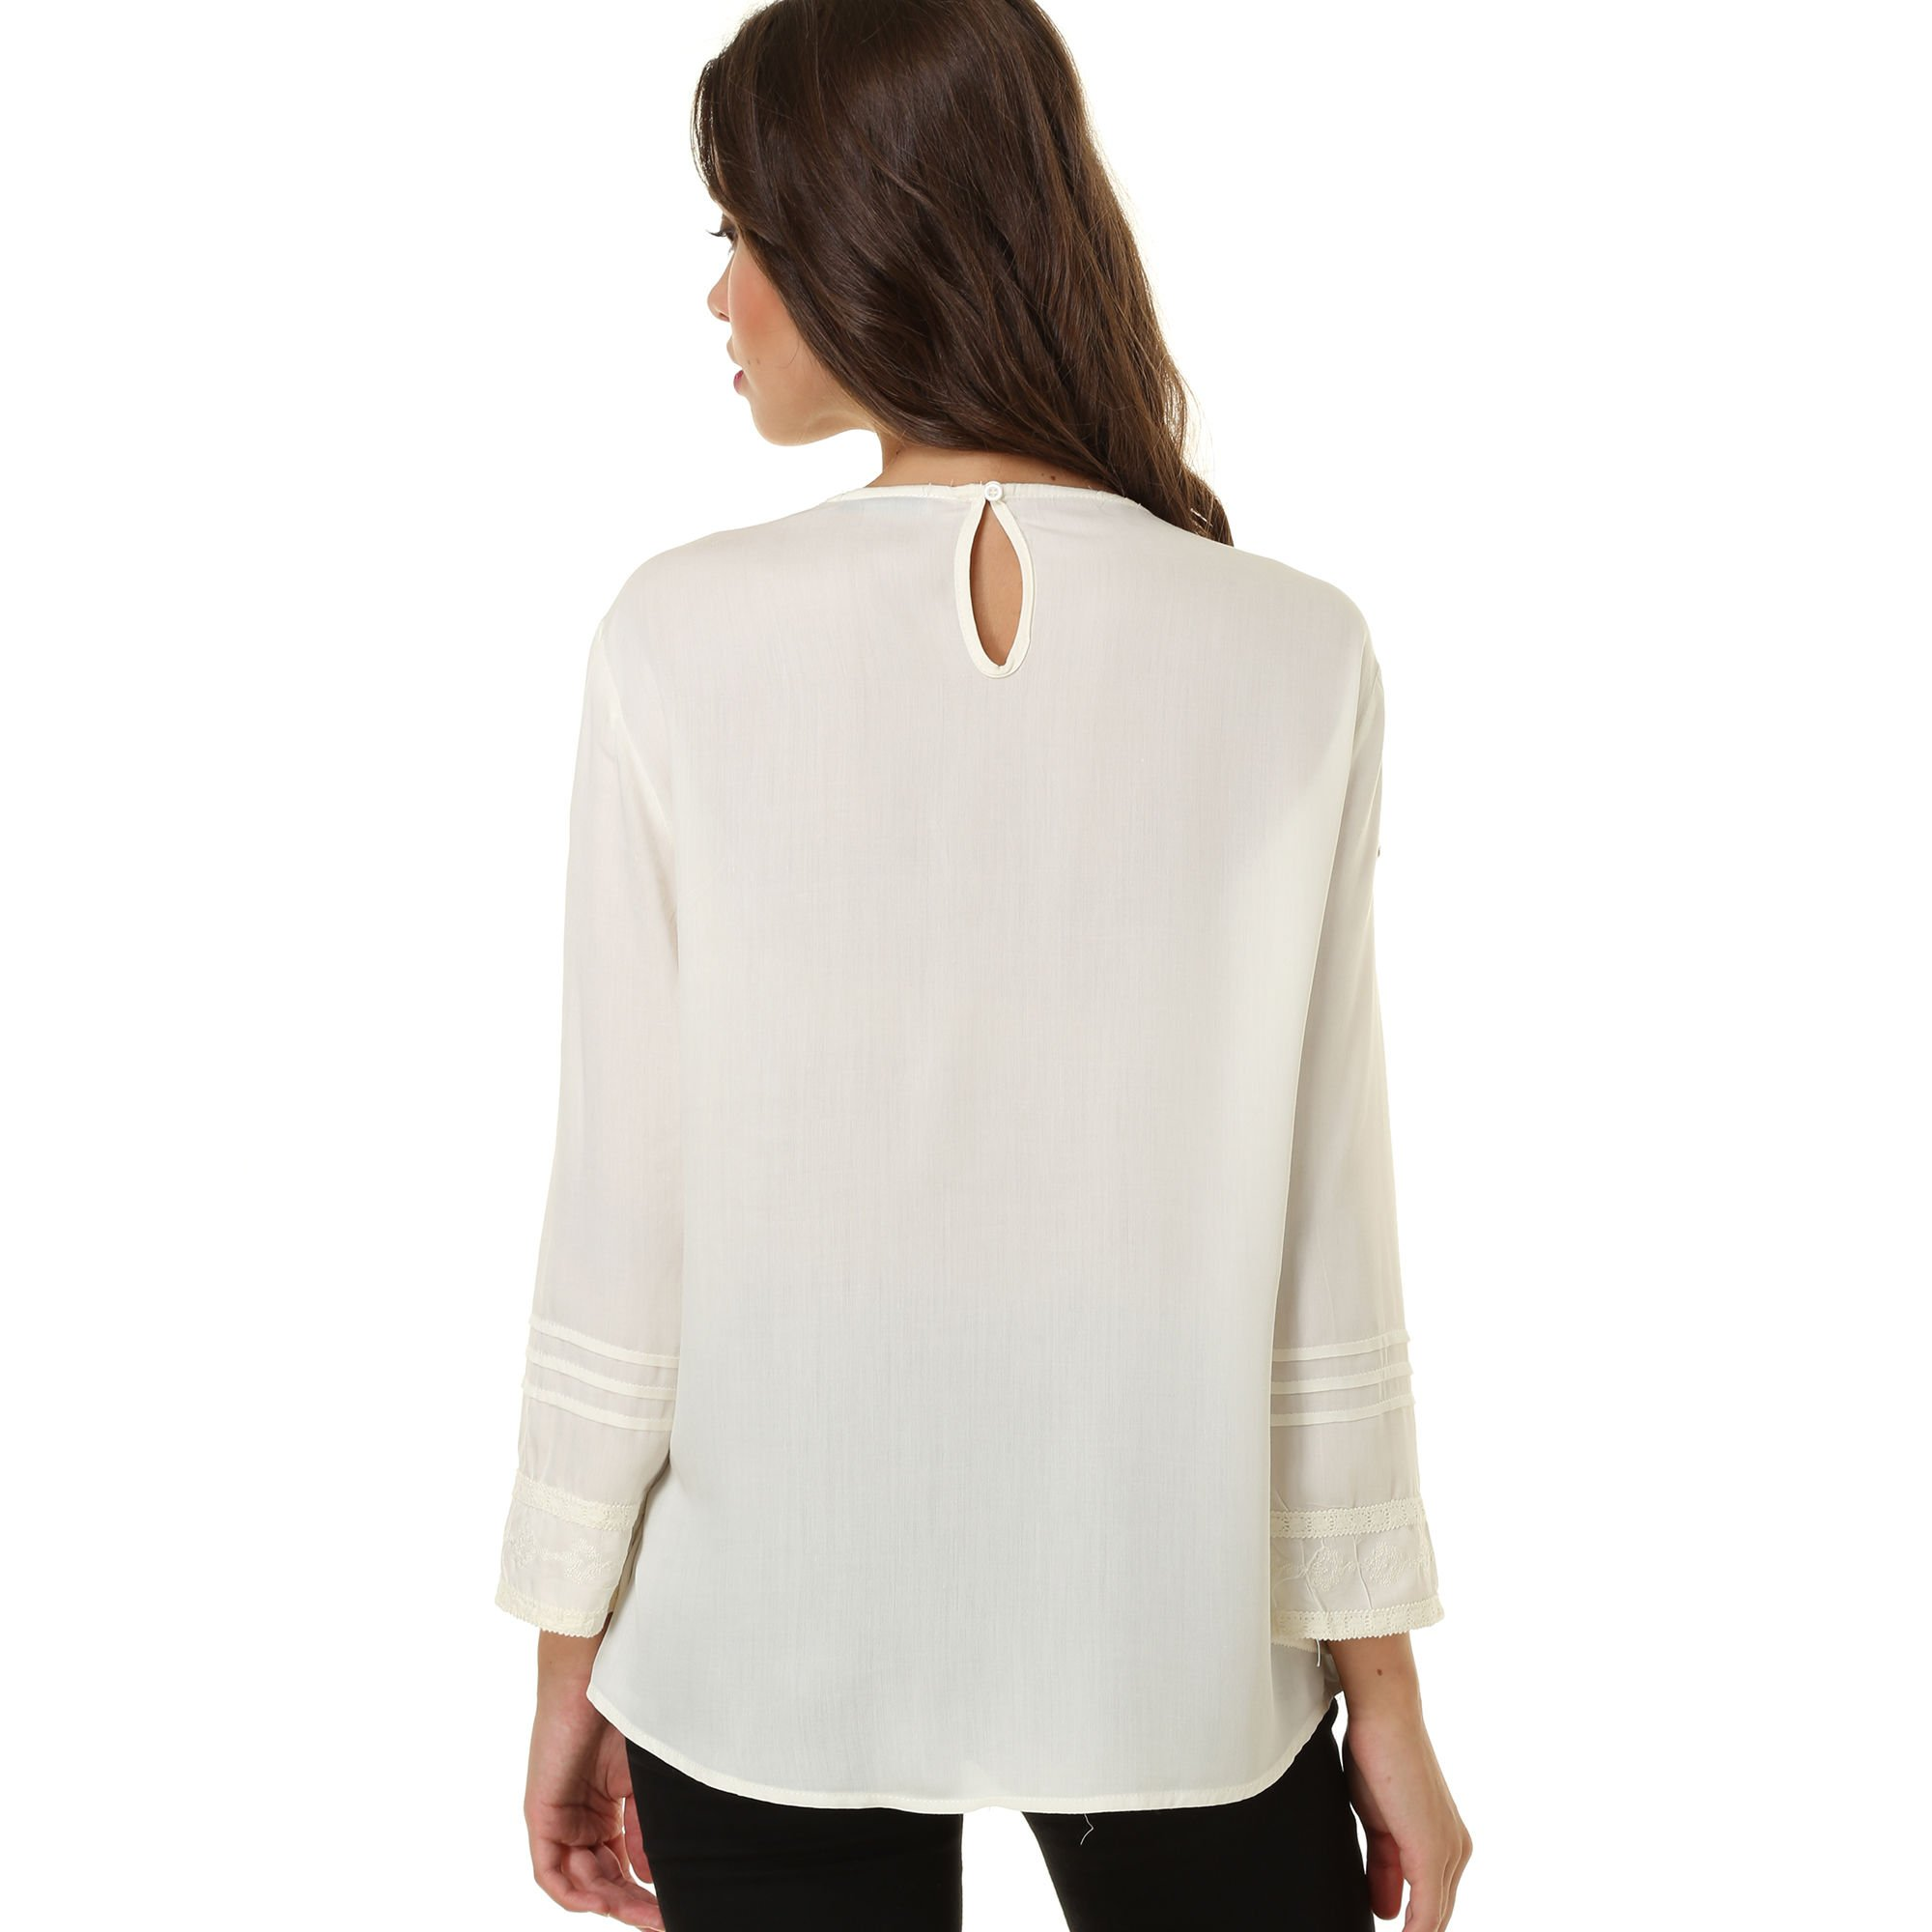 Blusa fluida panel bordado - Tutto Tempo